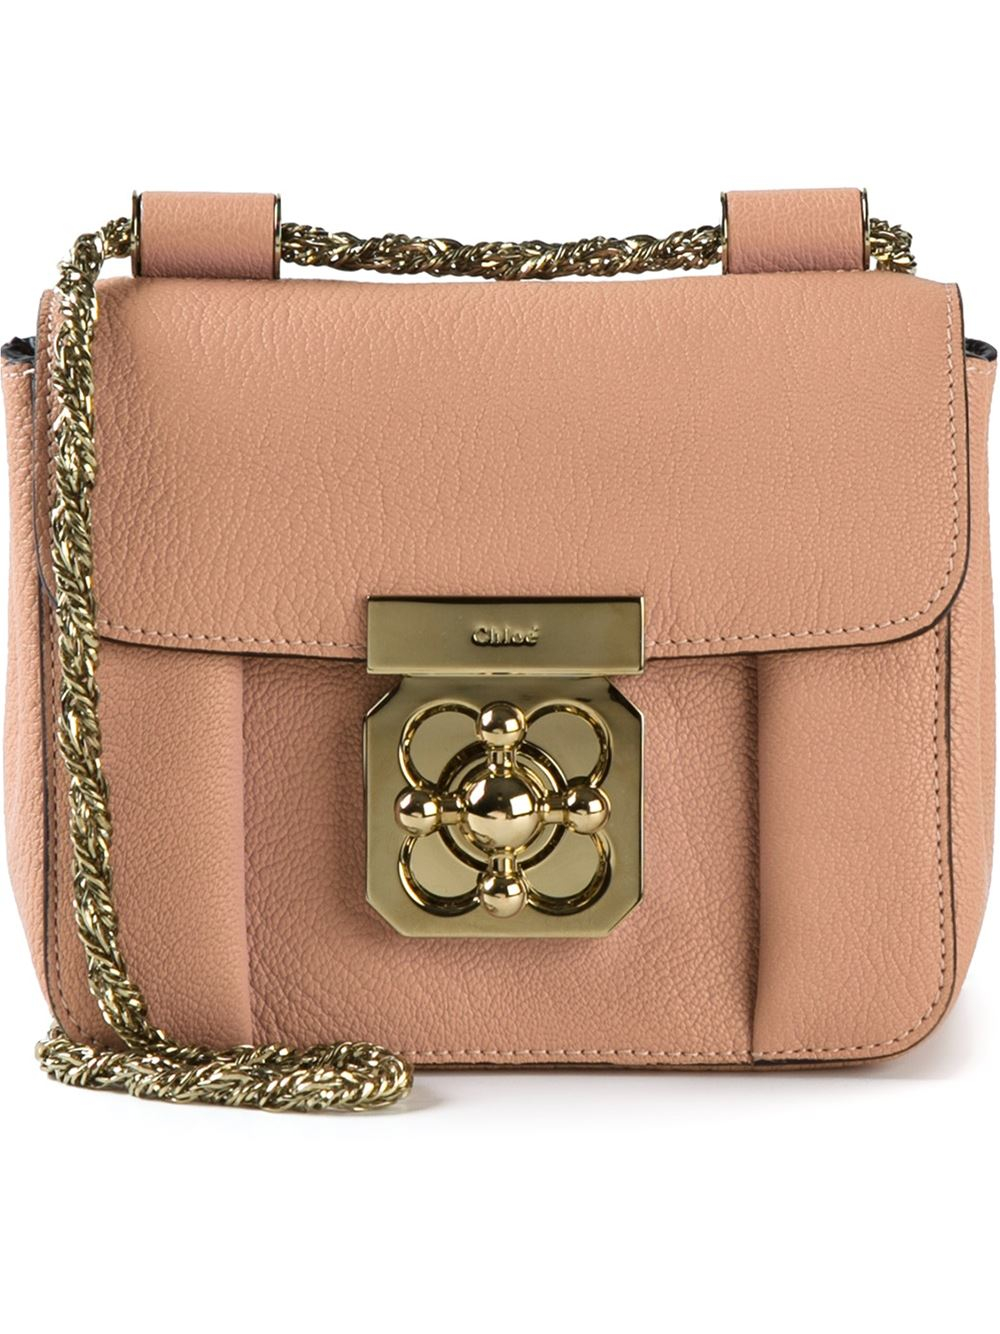 8624e0c8c Chloé Elsie Calf-leather Cross-body Bag in Pink - Lyst